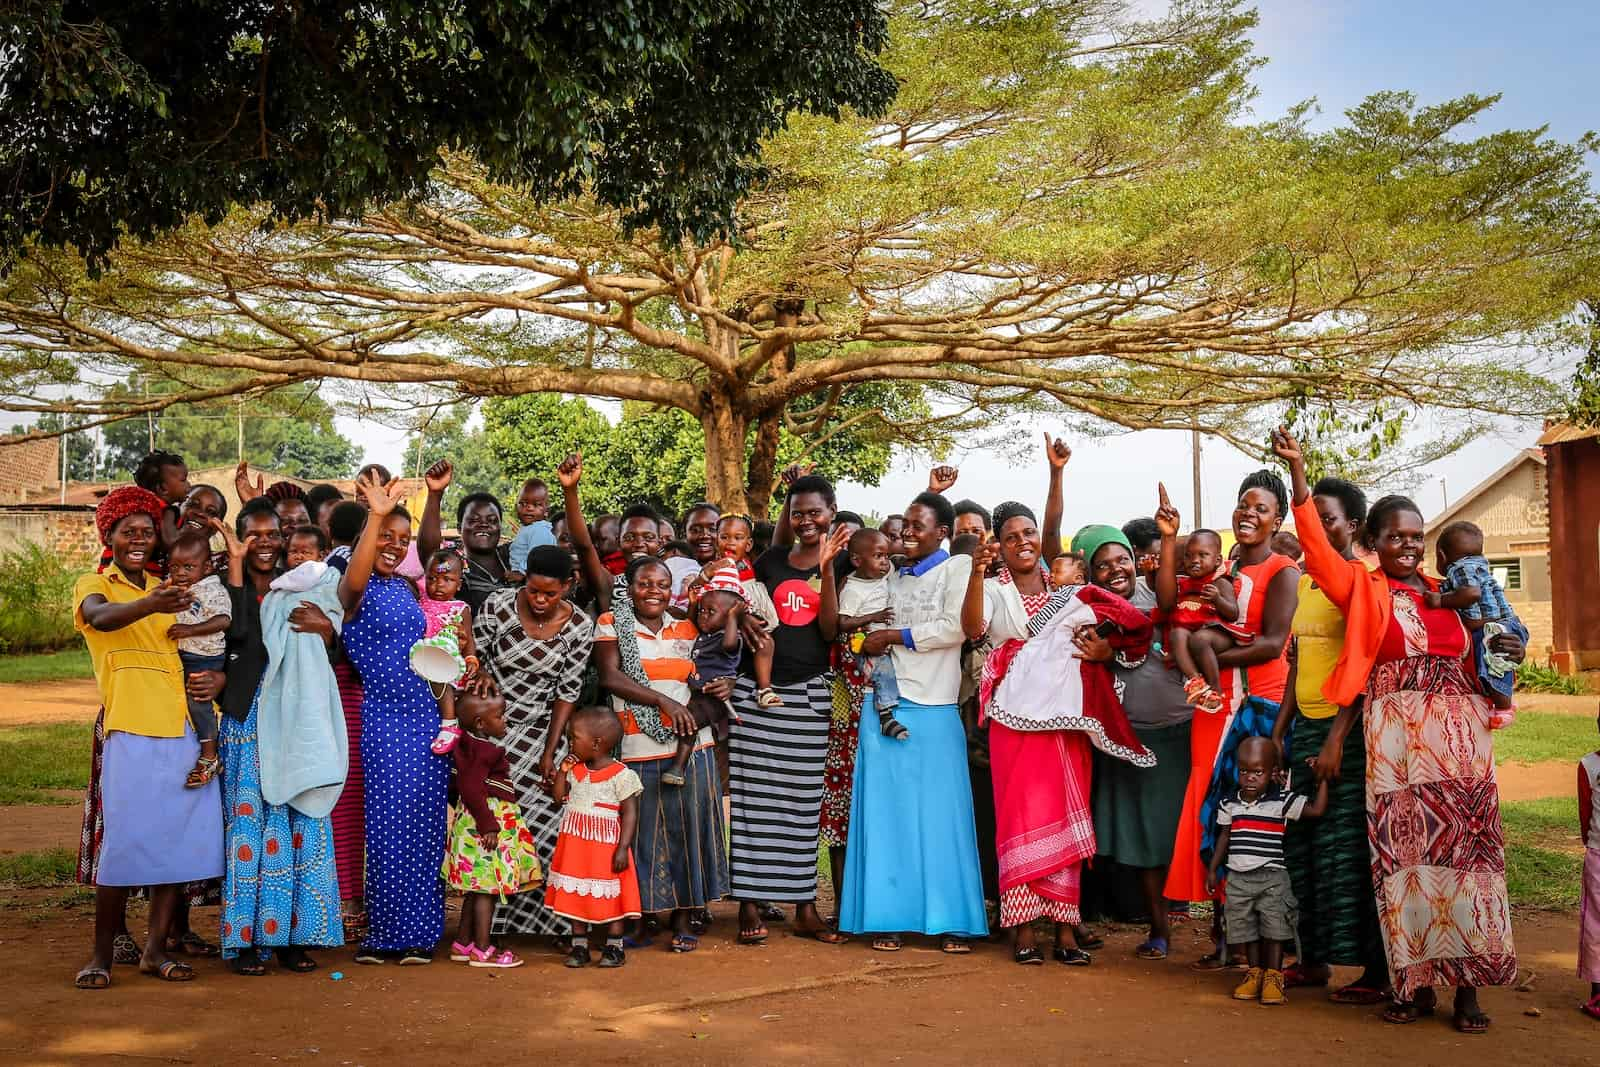 A group of women wearing long dresses and holding babies stands under a tree and cheer, some raising their hands in the air, celebrating an important birthday milestone.